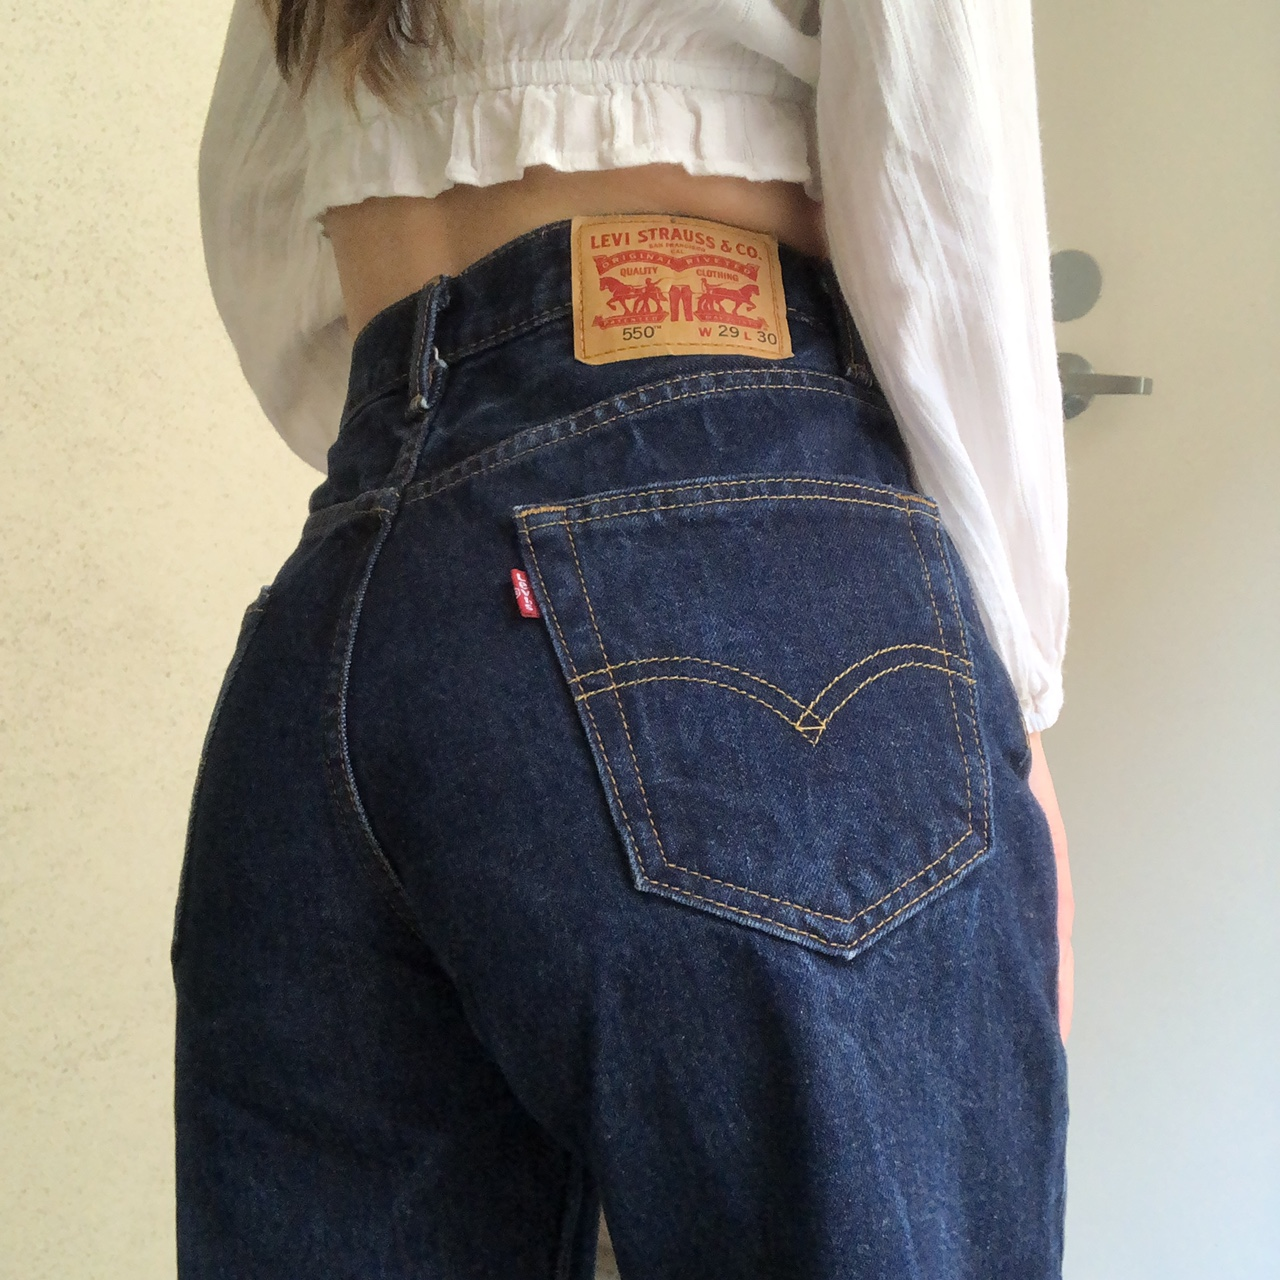 Product Image 1 - Levi's 550 relax fit dark